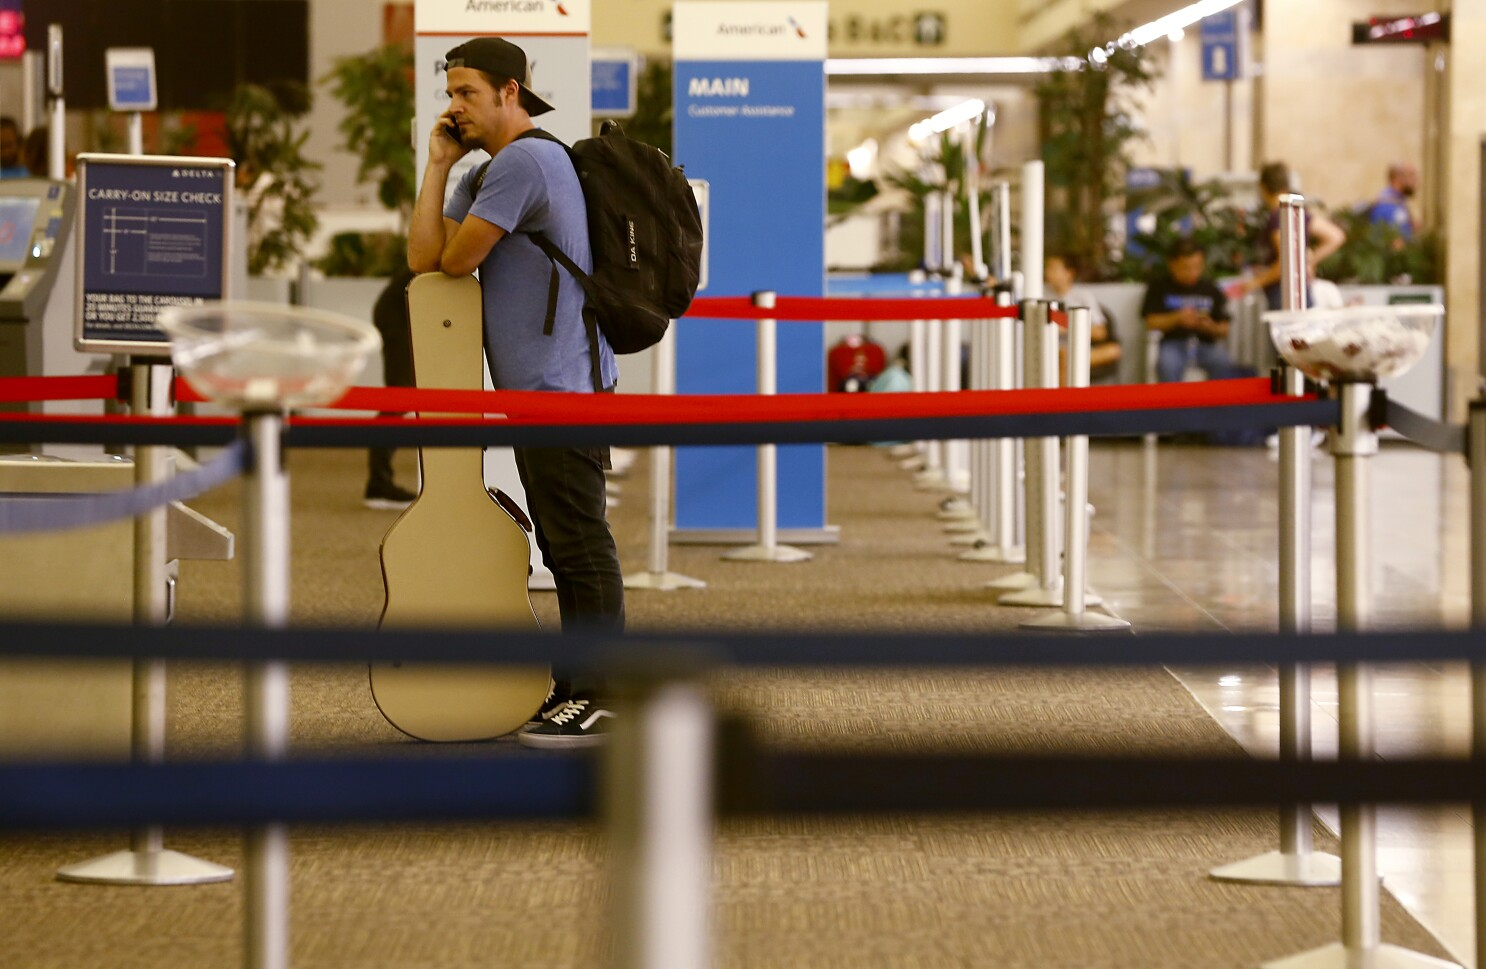 John Wayne Airport back open after power outage caused flight cancellations